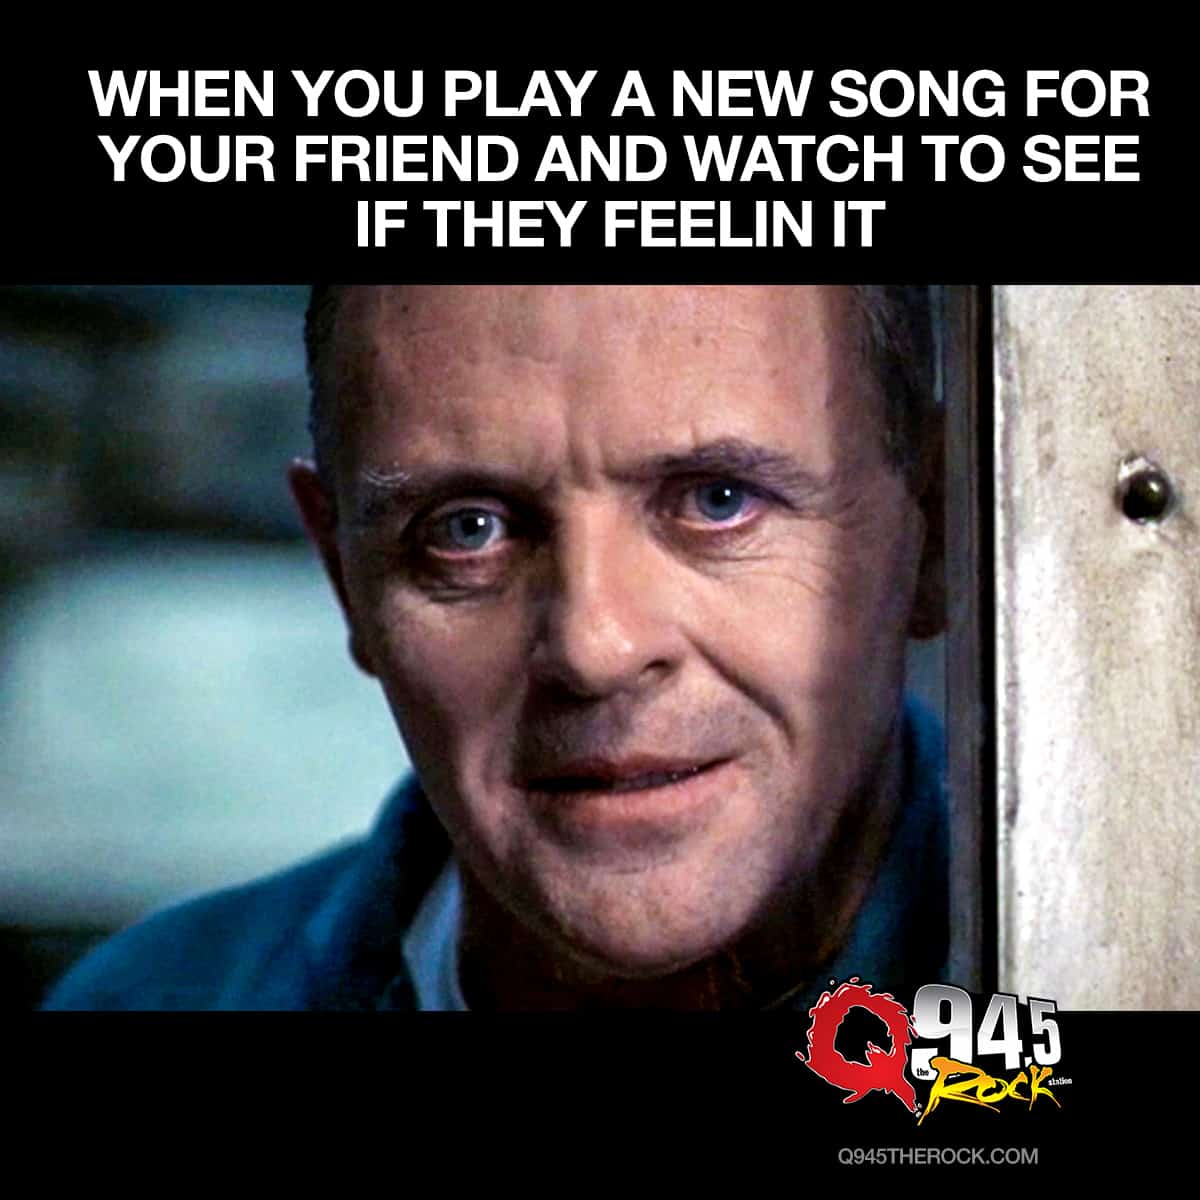 Watch, Song, and Friend. You know you've done this.